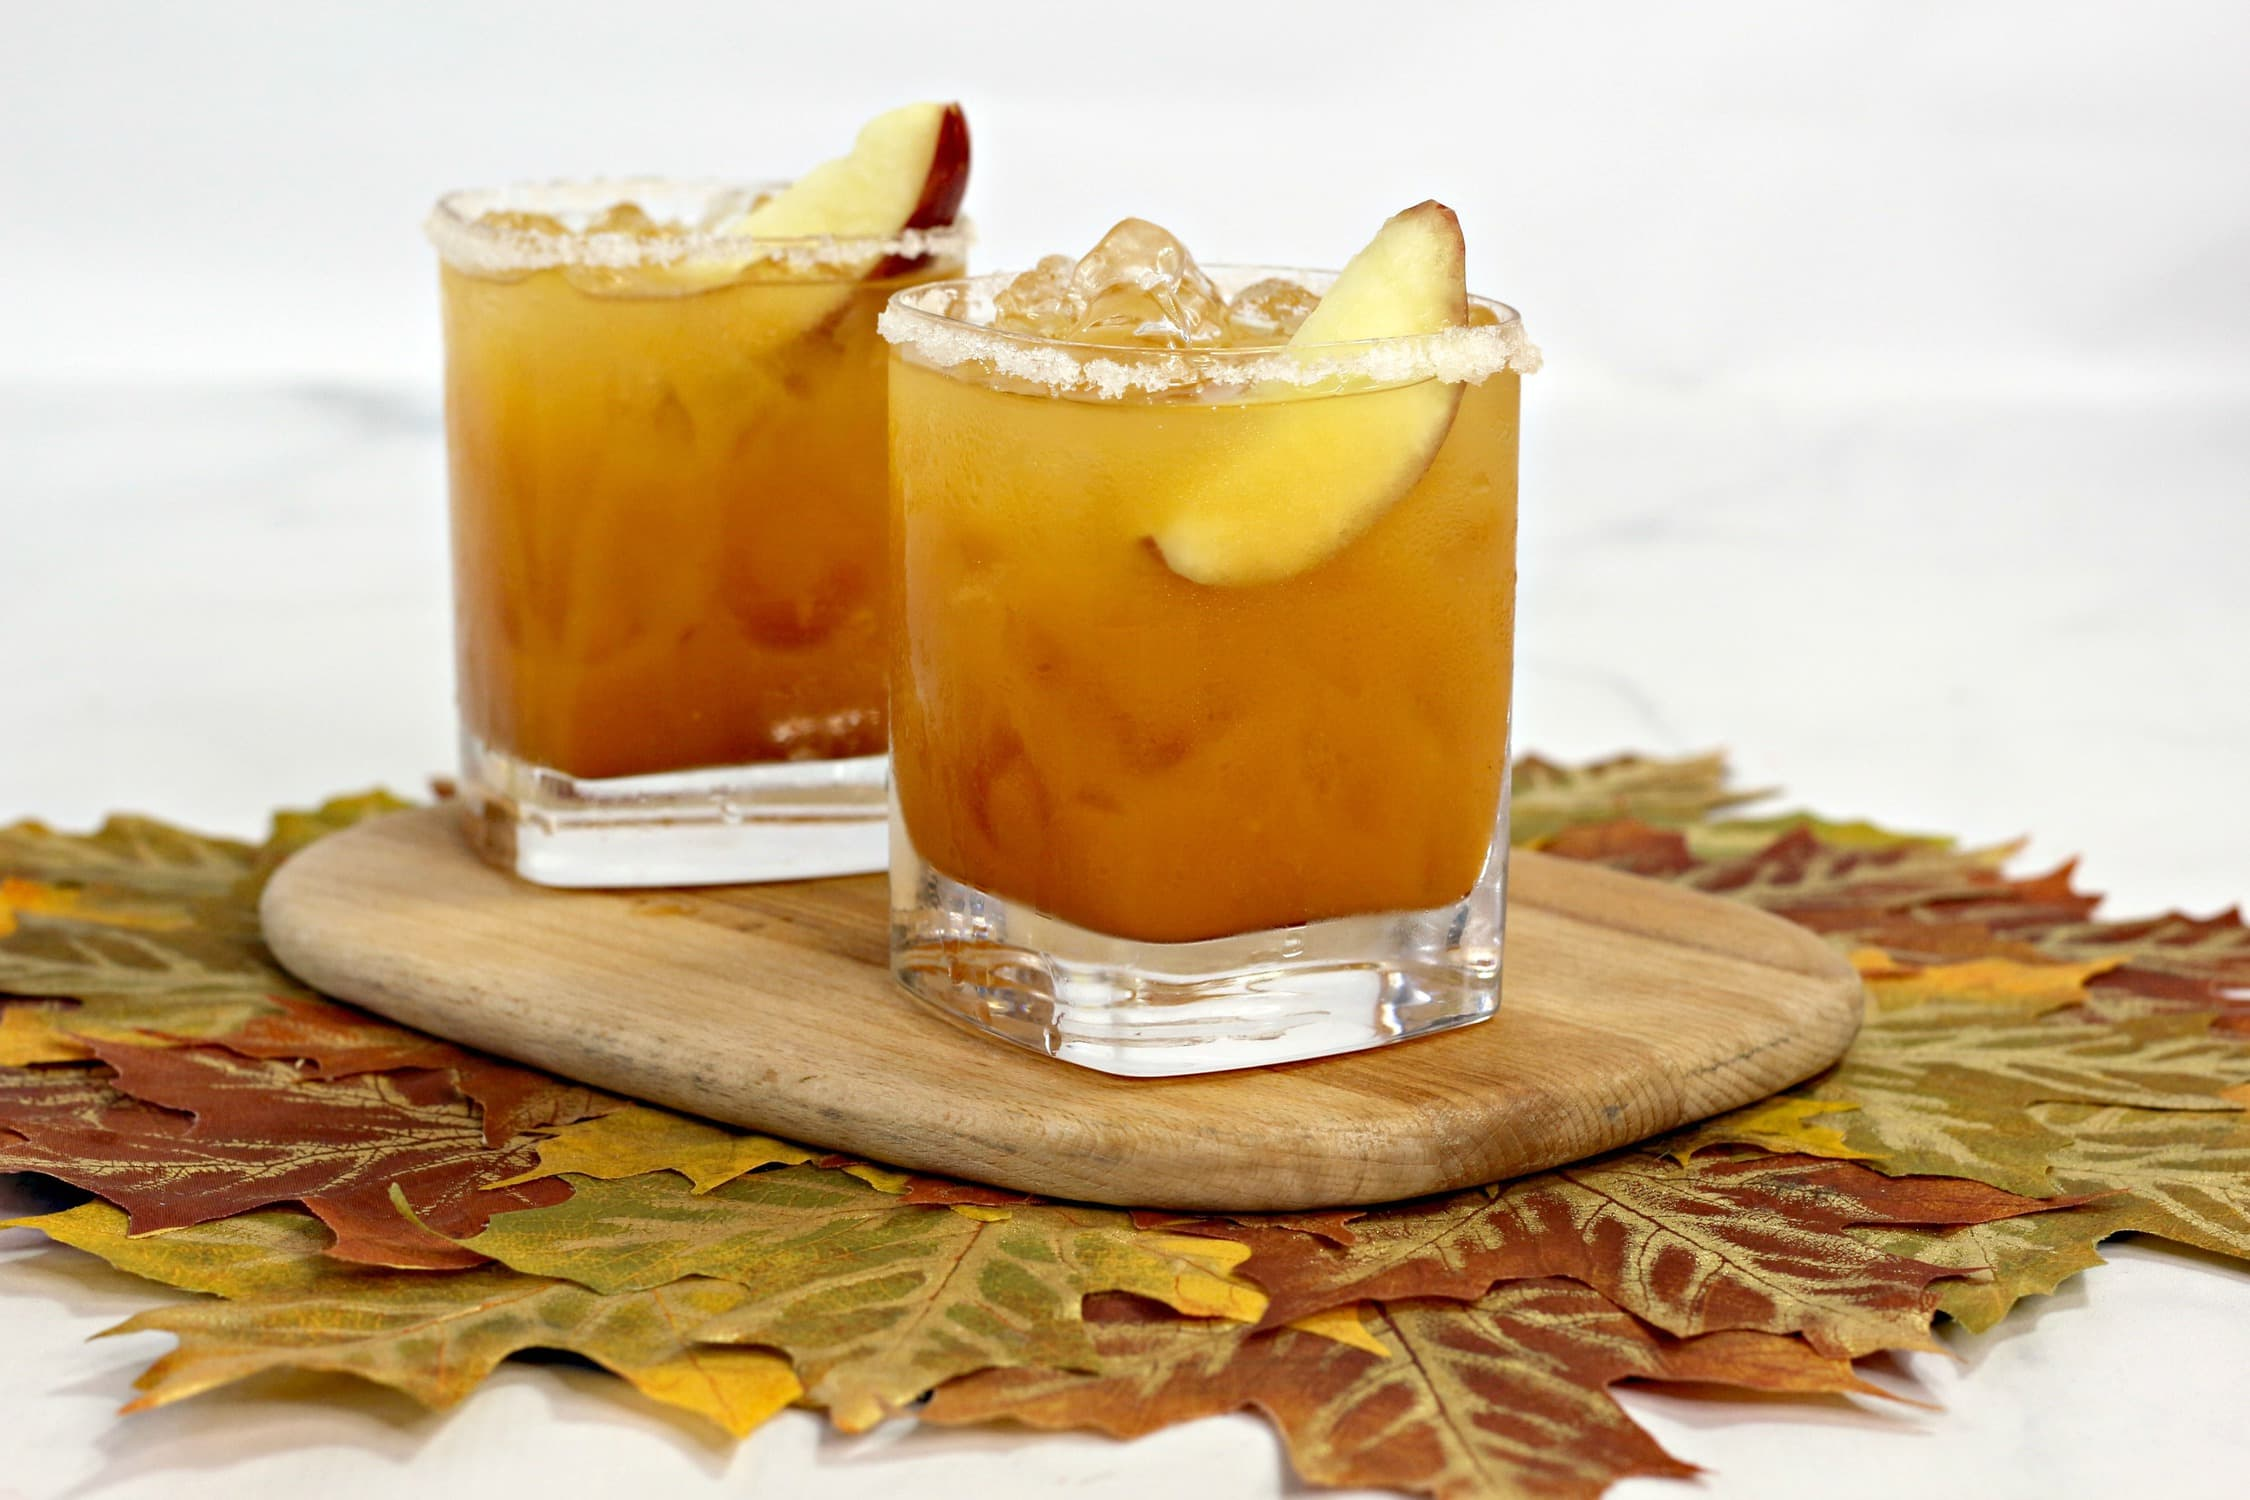 Festive Fall Margarita